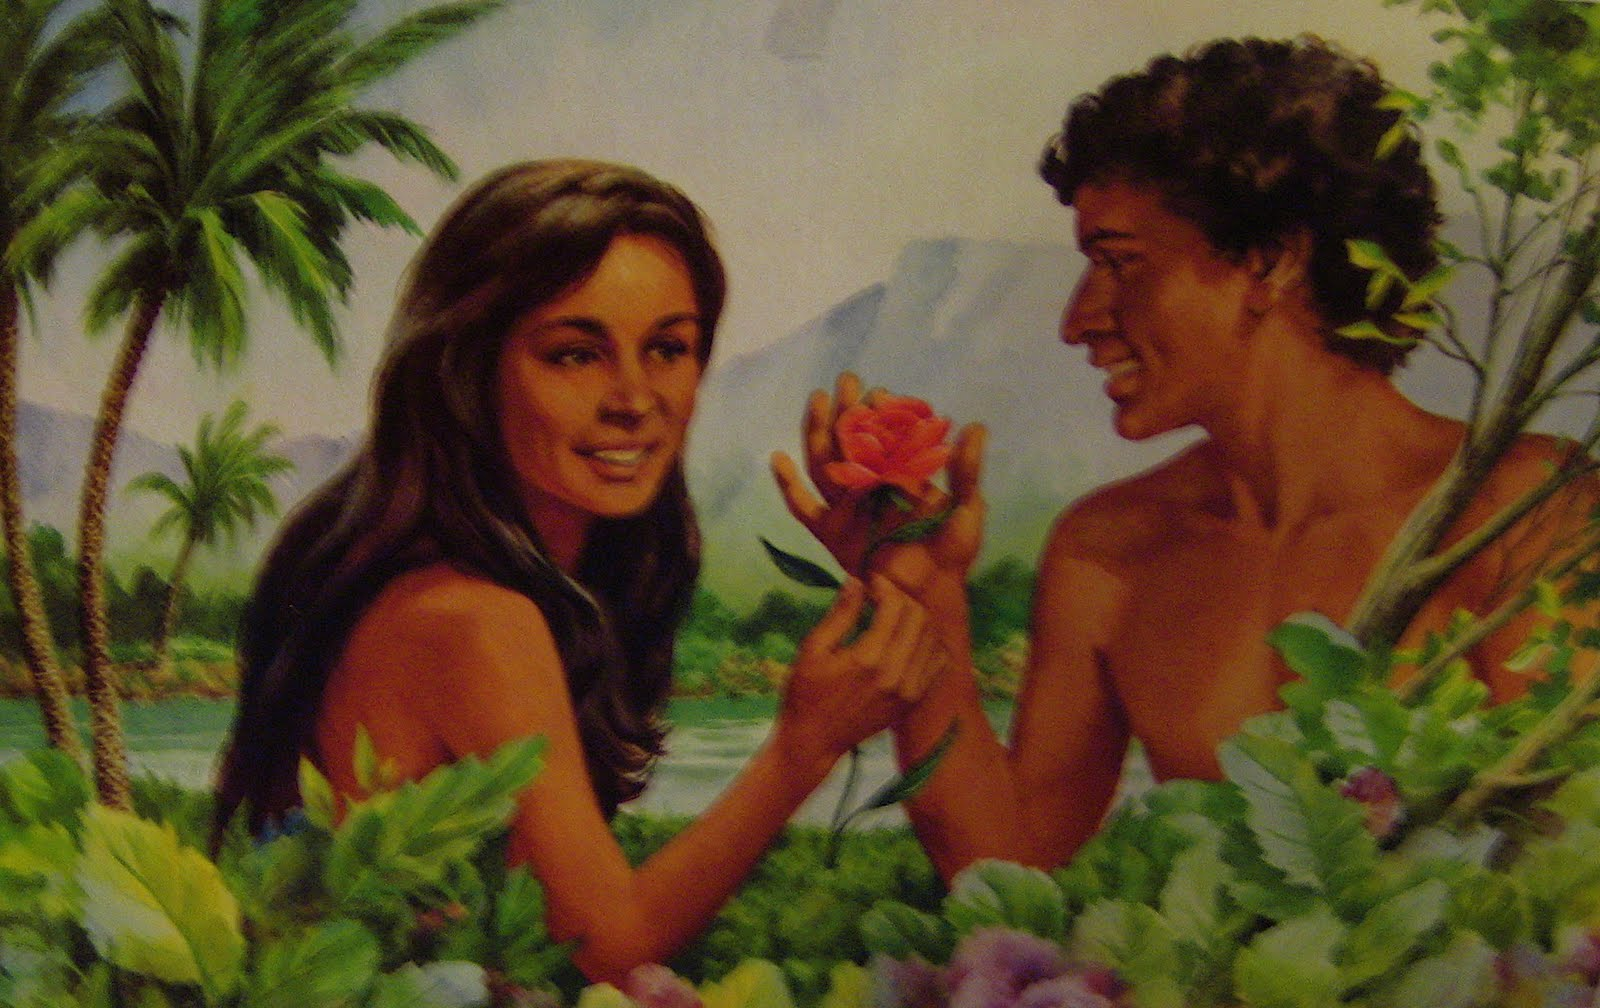 http://2.bp.blogspot.com/-GWtqpow65qc/Tfx7sb_WuHI/AAAAAAAAAAk/n8R7OVf31Q4/s1600/adam-and-eve.jpg